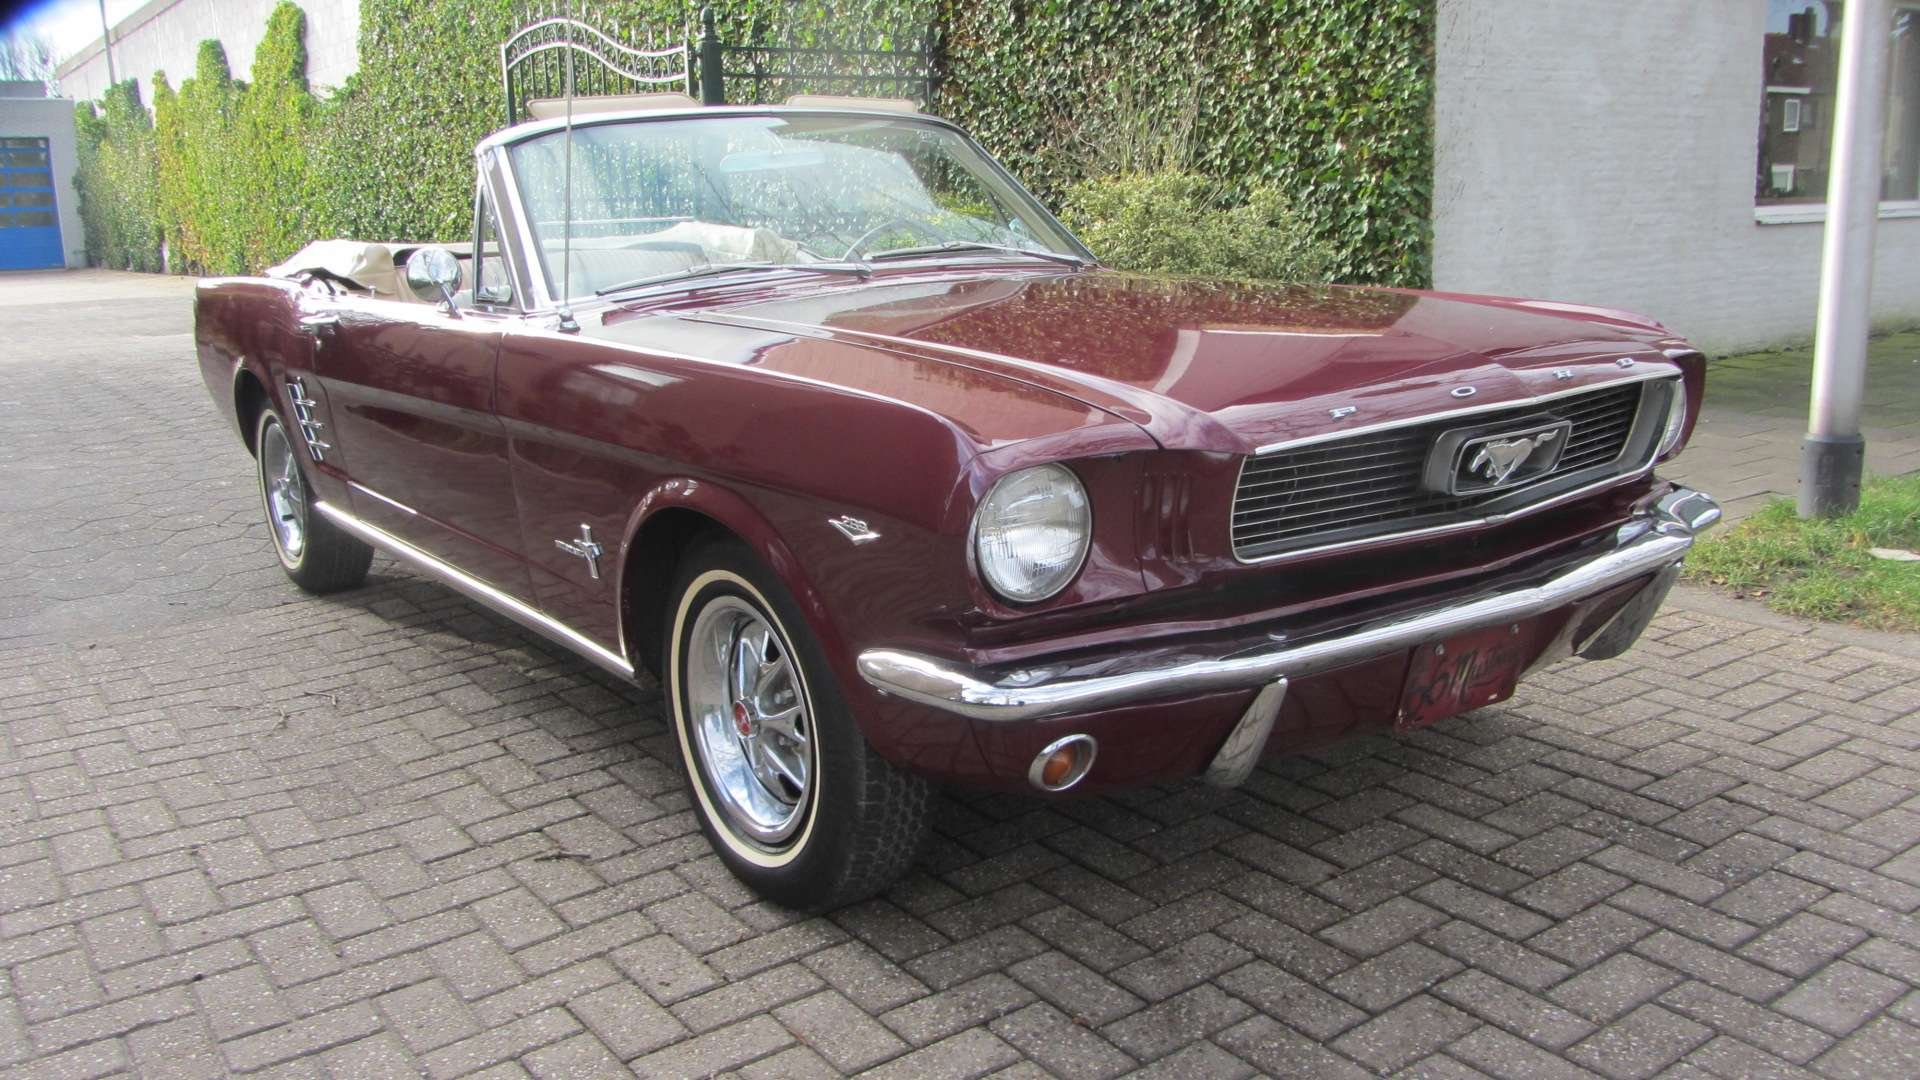 Ford Mustang V 8 Pony Intr 1966  & 50 USA Classics For Sale (picture 3 of 6)